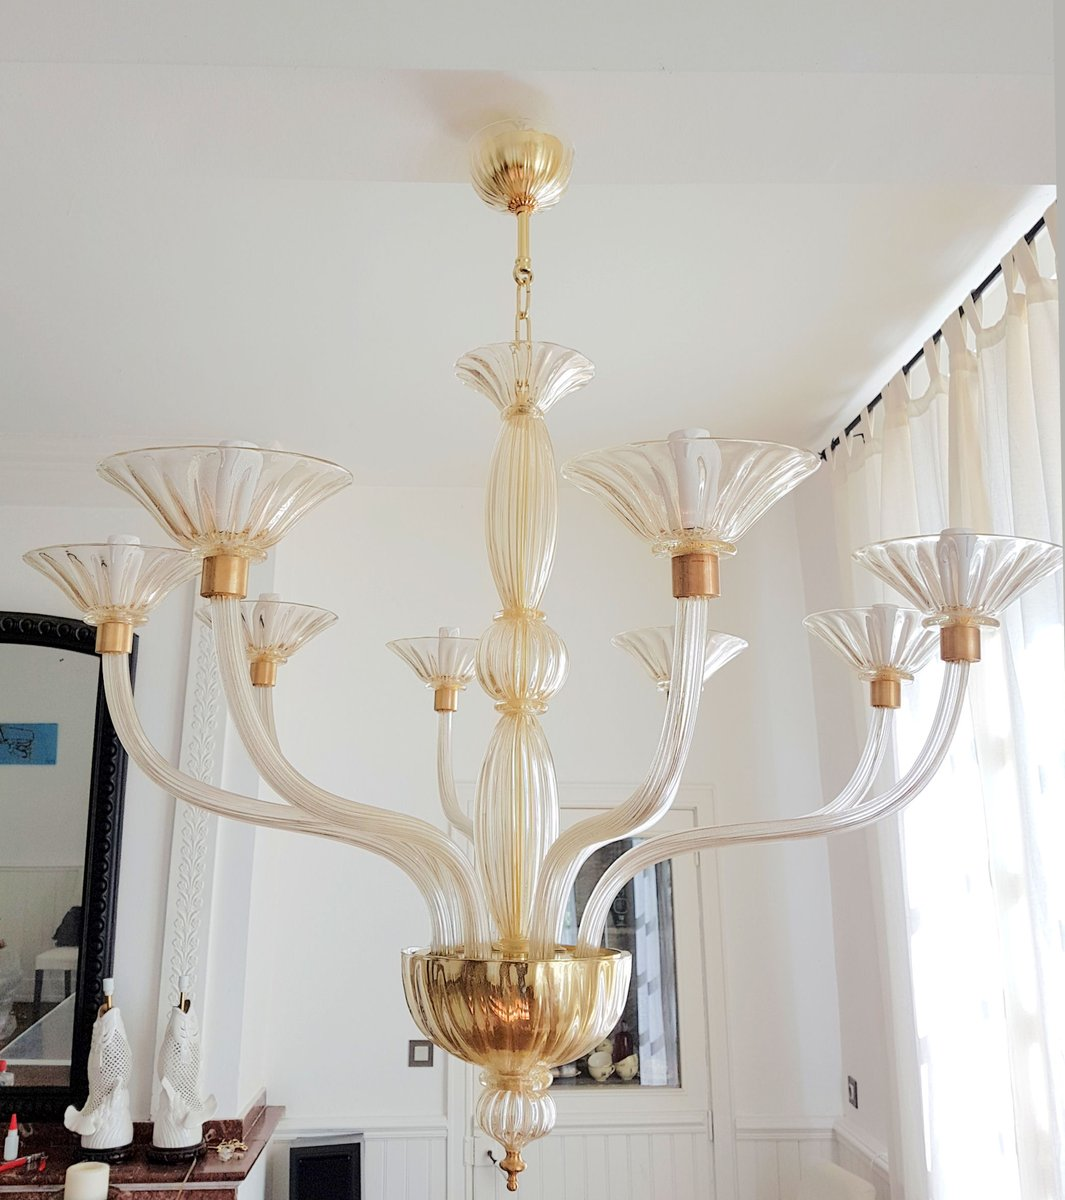 Murano Glass Chandelier Large: Large Clear & Gold Murano Glass Chandelier, 1970s For Sale